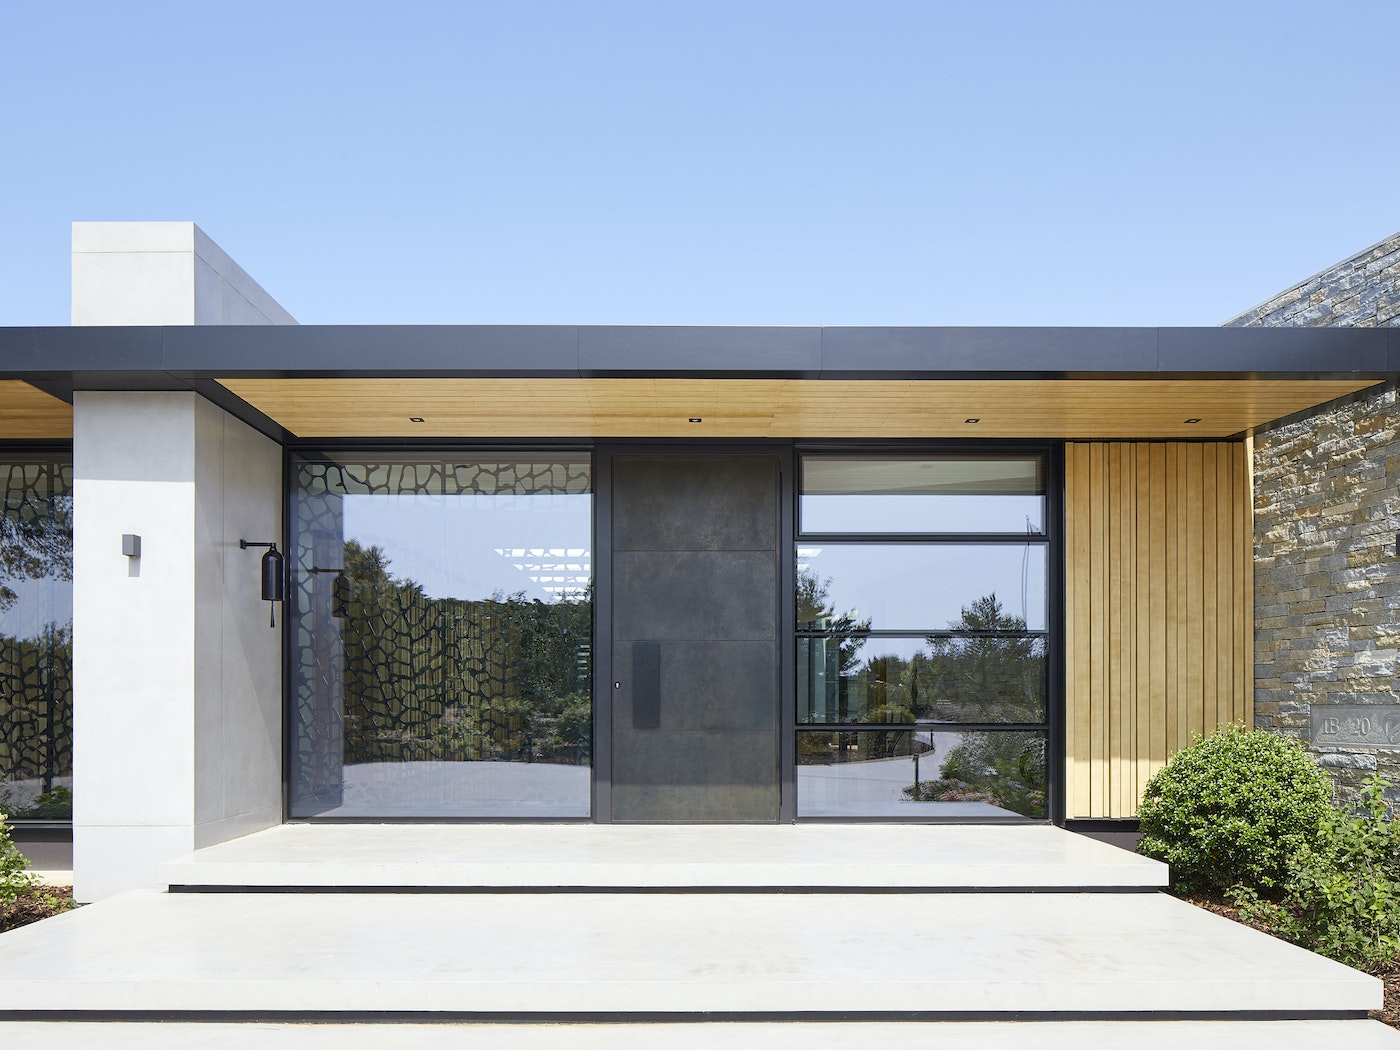 This copper door looks stunning against the architectural glazed wall